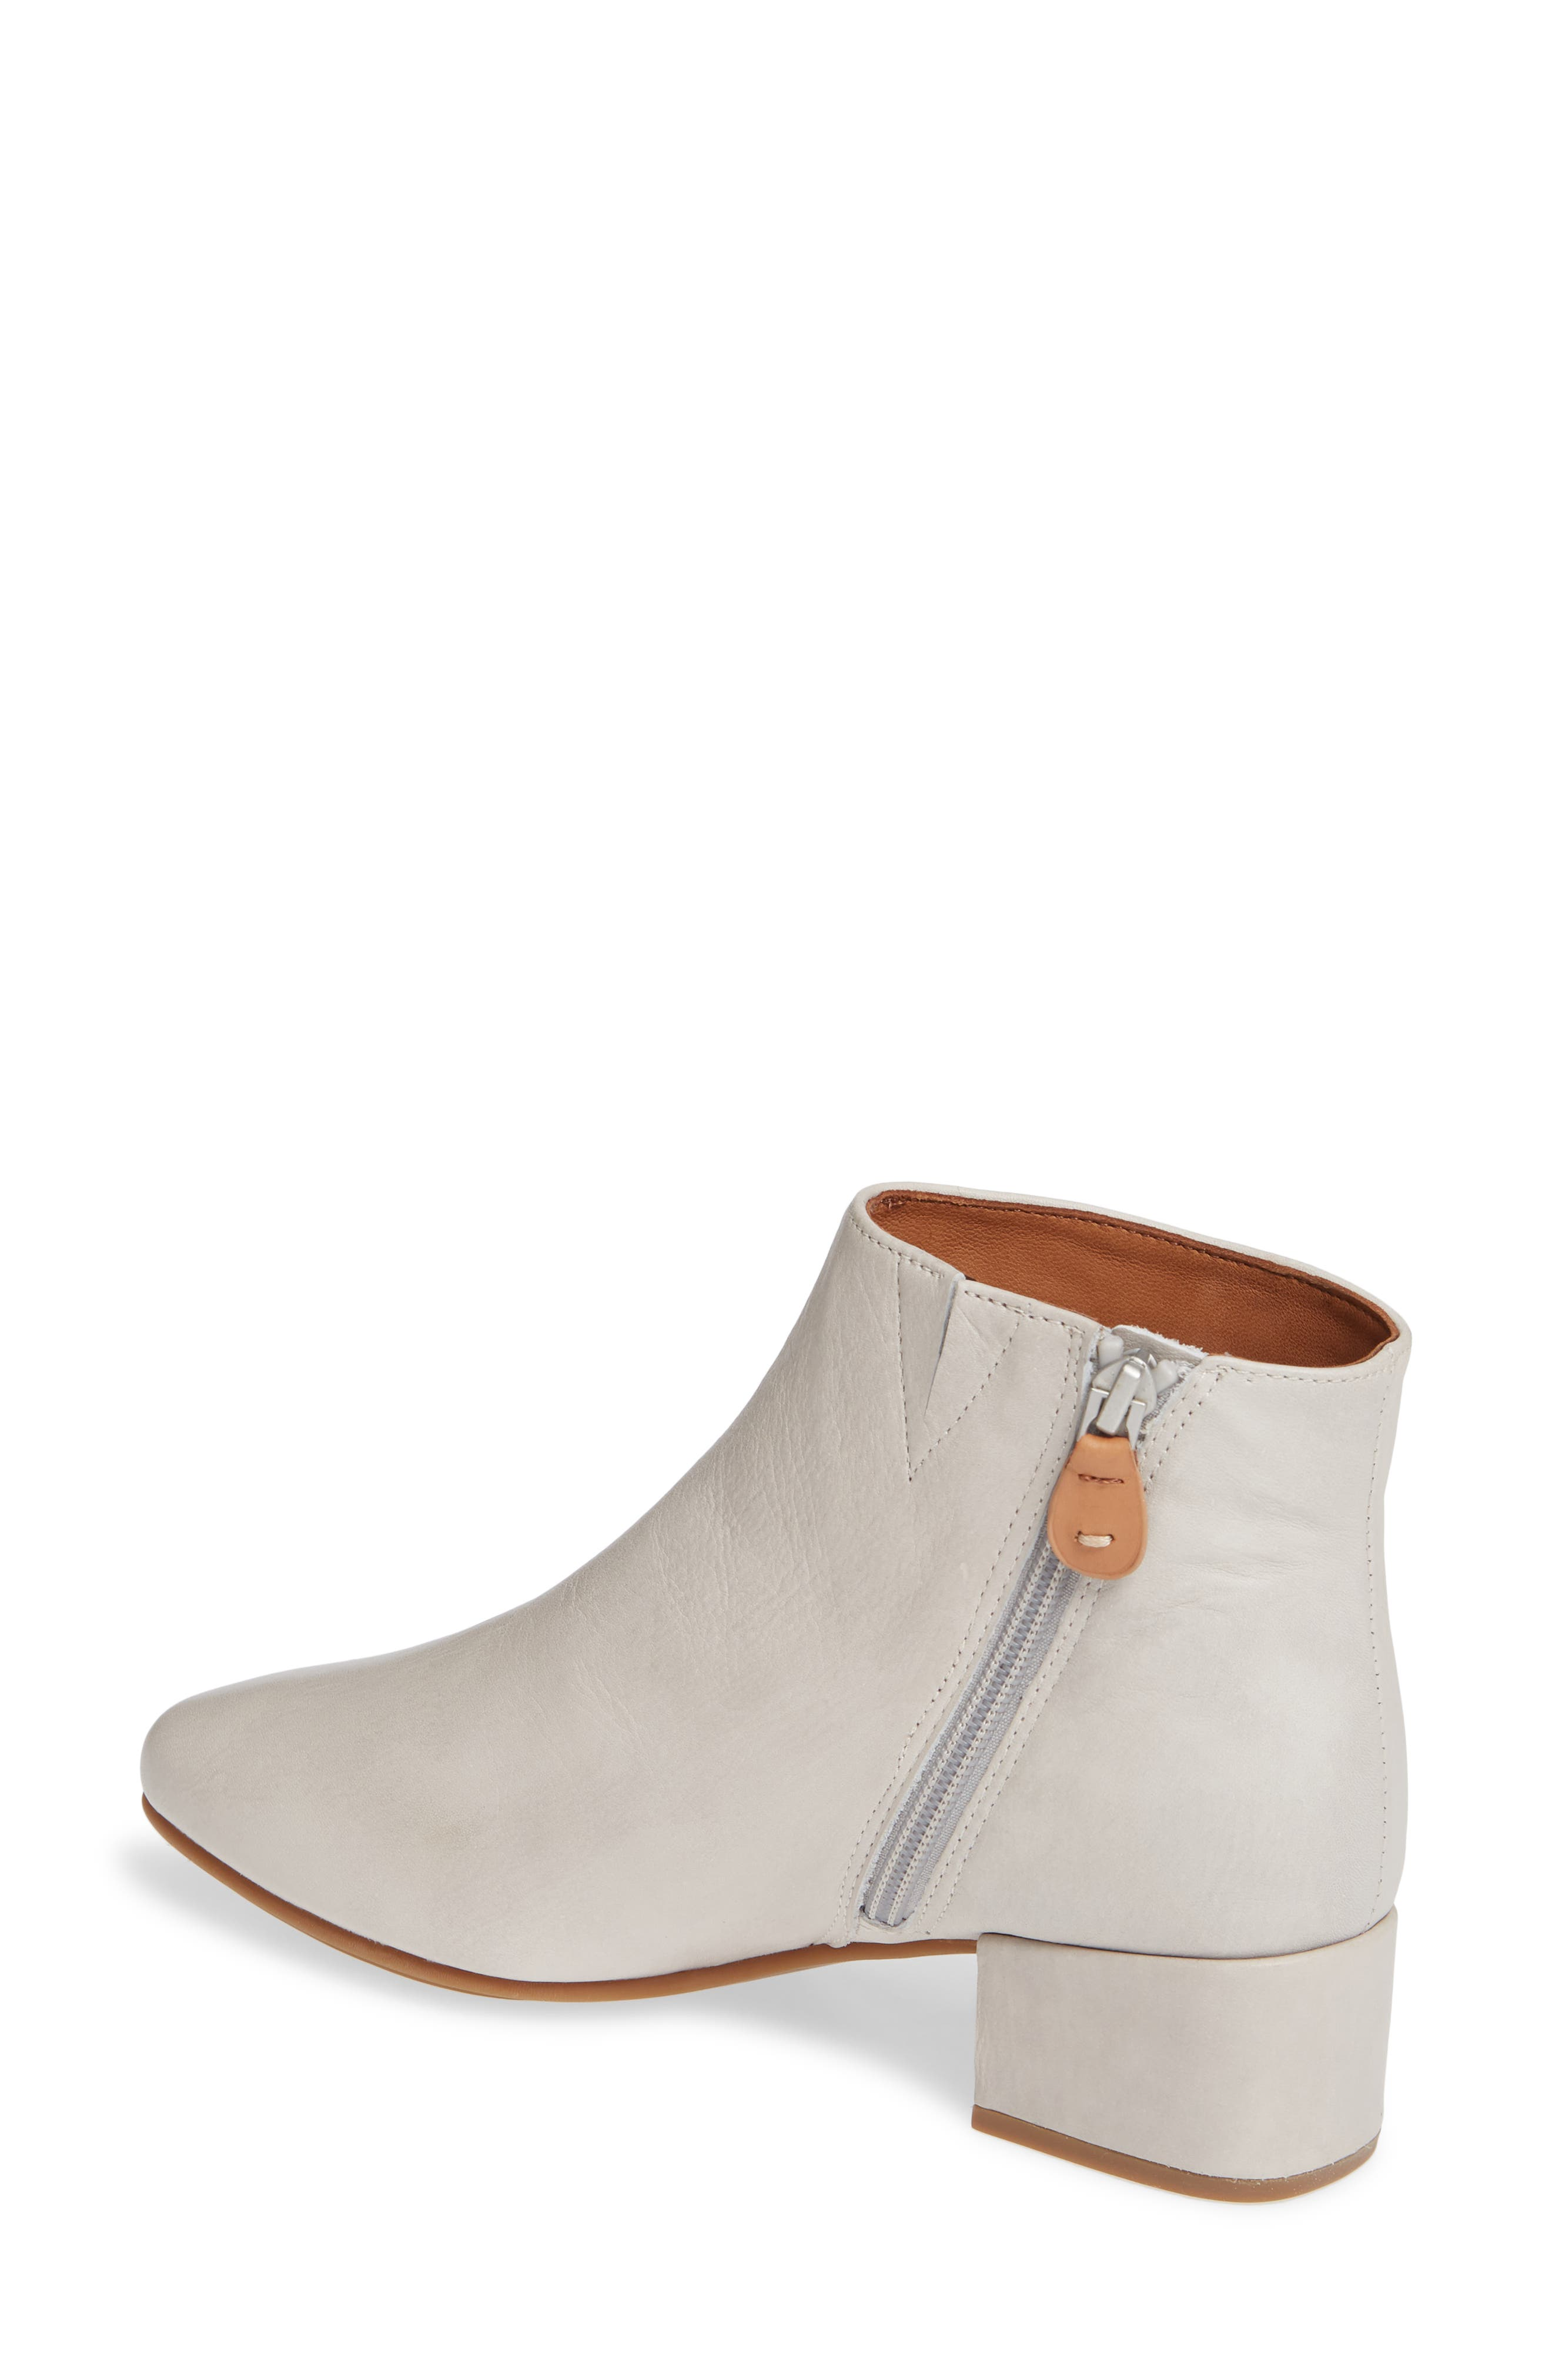 GENTLE SOULS BY KENNETH COLE, Ella Bootie, Alternate thumbnail 2, color, LIGHT GREY LEATHER